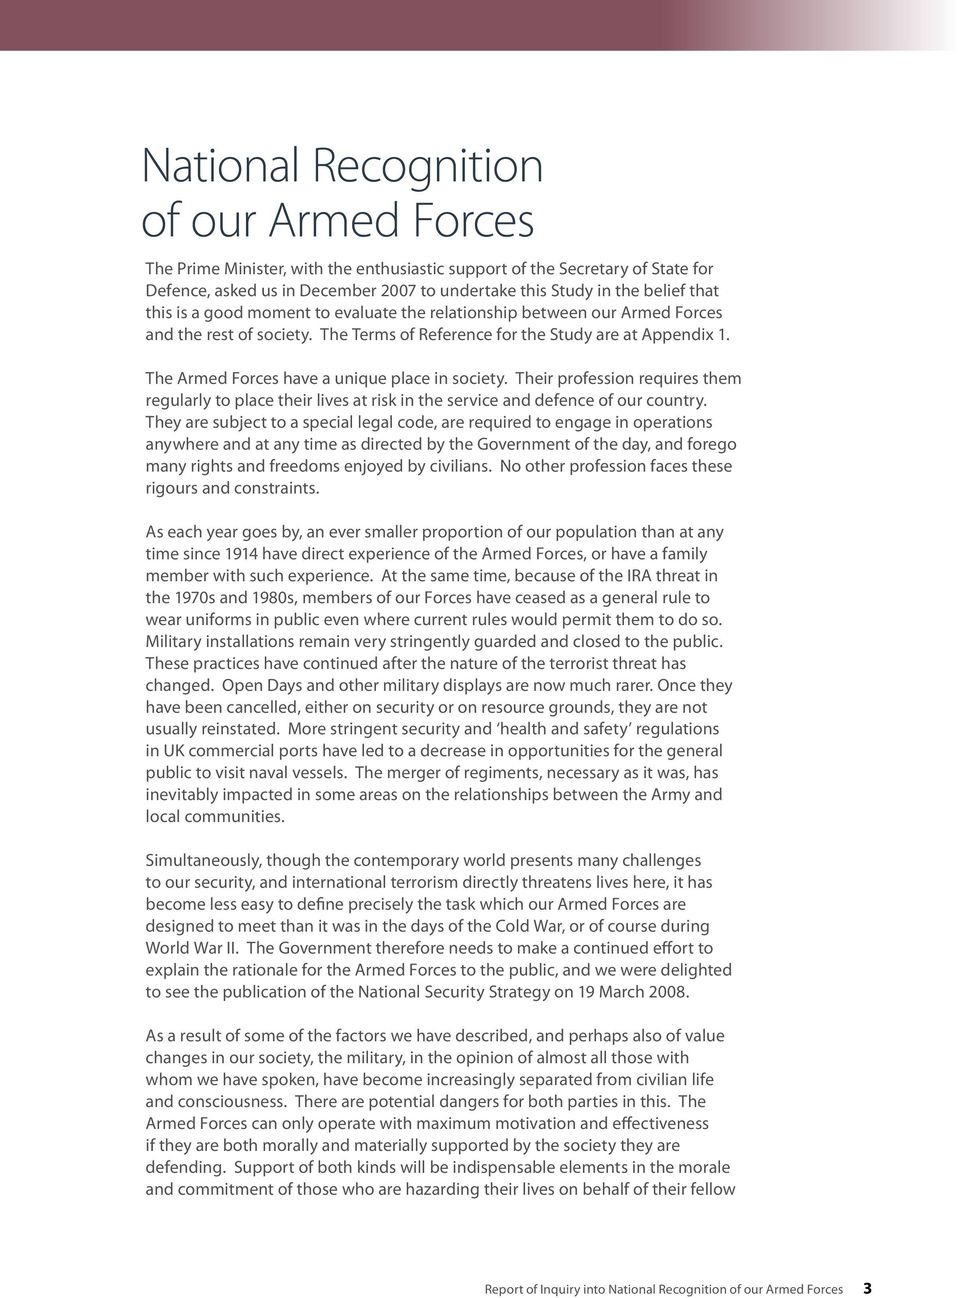 The Armed Forces have a unique place in society. Their profession requires them regularly to place their lives at risk in the service and defence of our country.